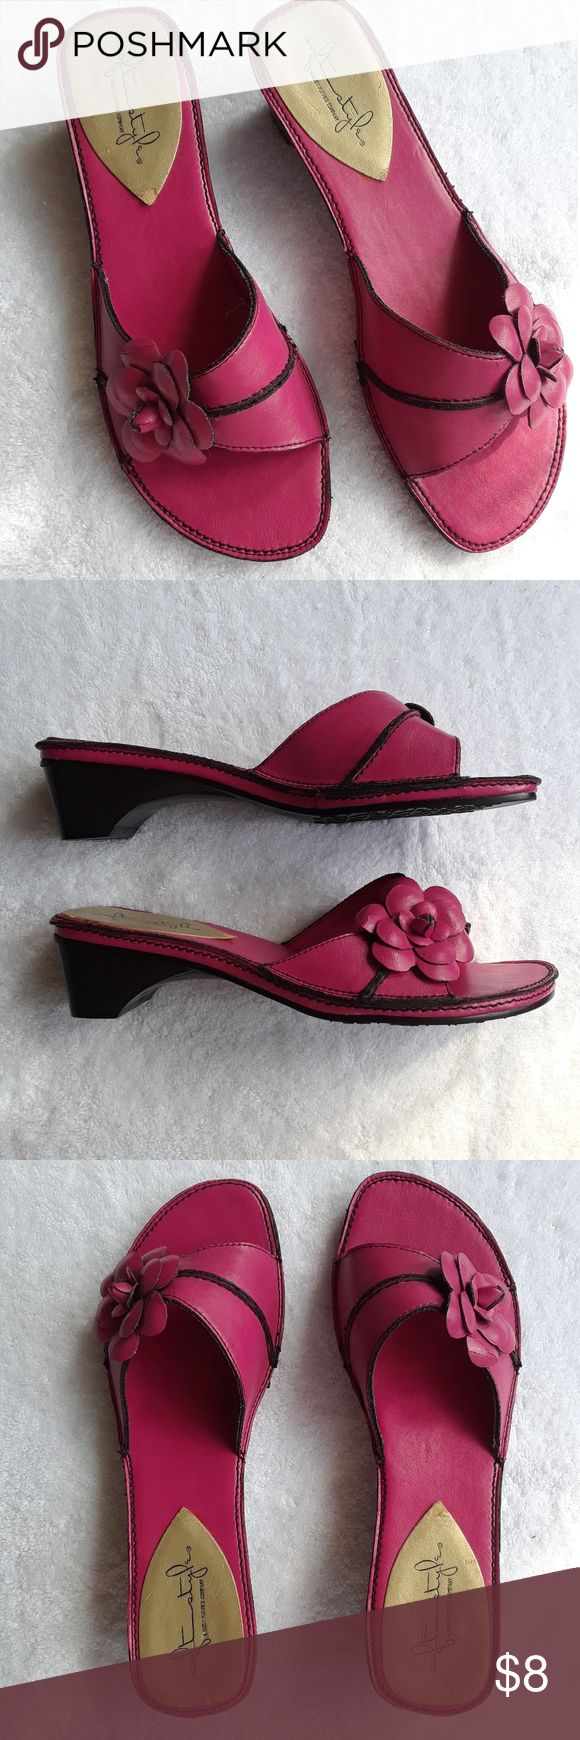 SOFT STYLES Slides Mules VGC Hot pink w/ flower detail Soft Styles by Hush Puppies Shoes Mules & Clogs